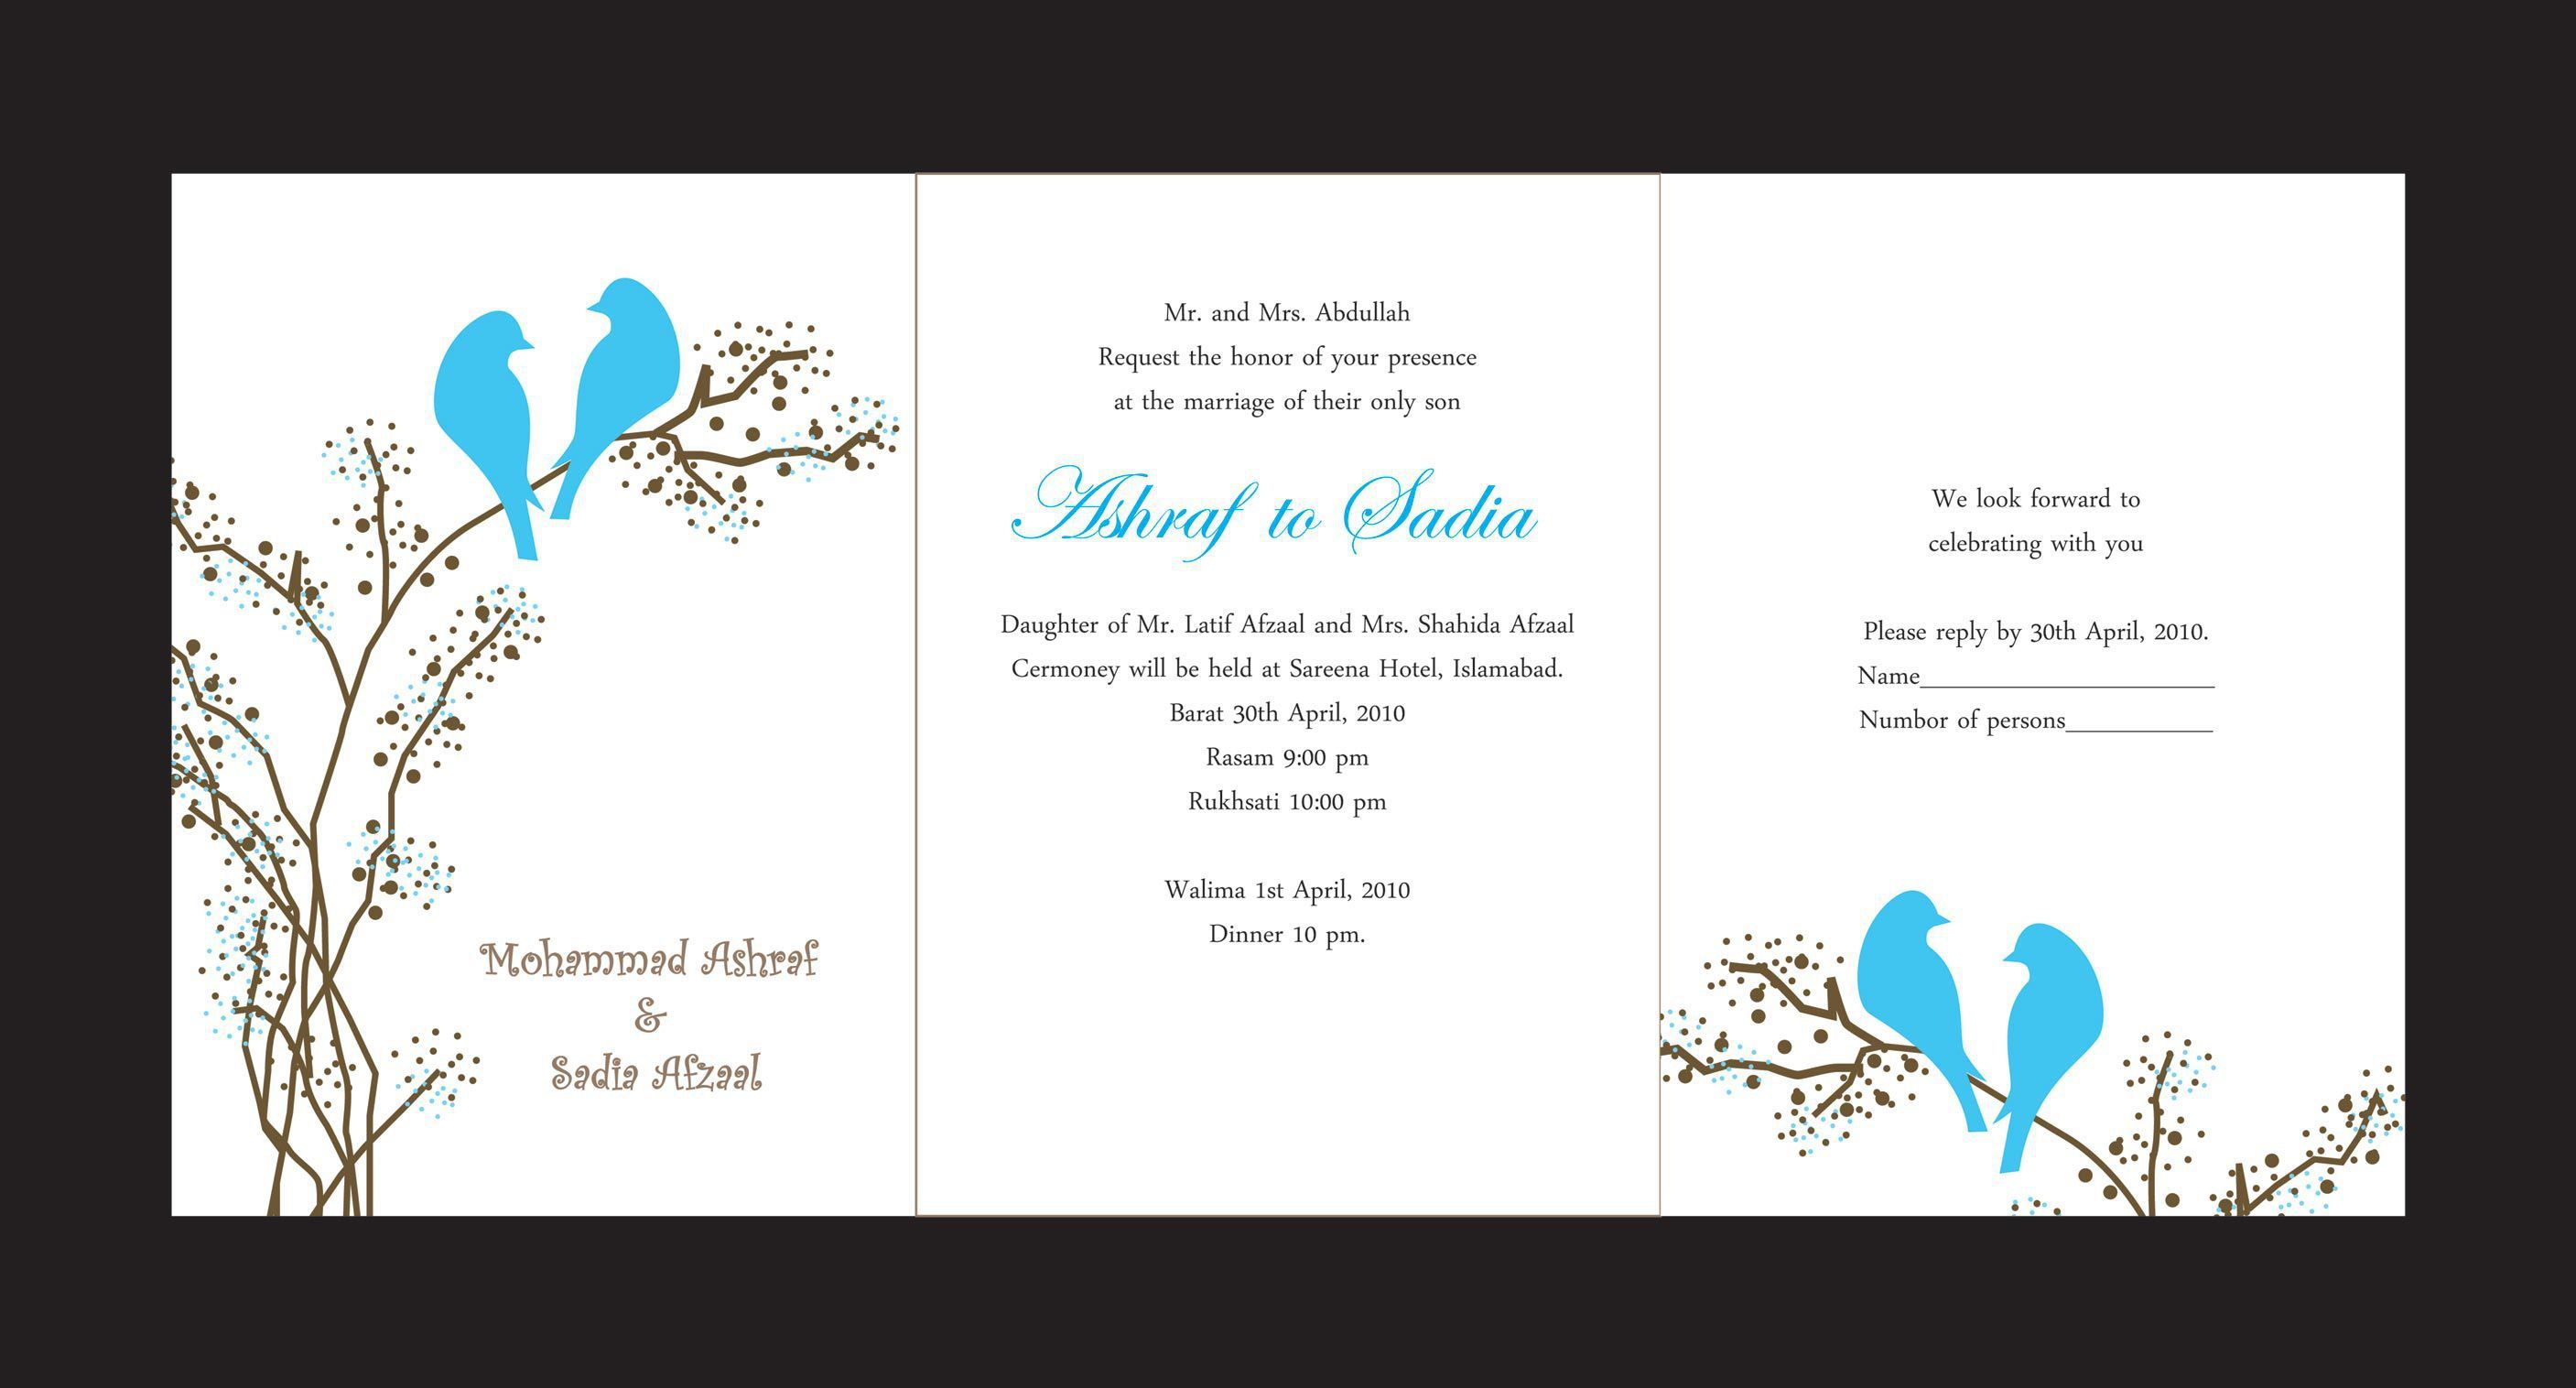 invitation card design online free | wedding invitations | Pinterest ...